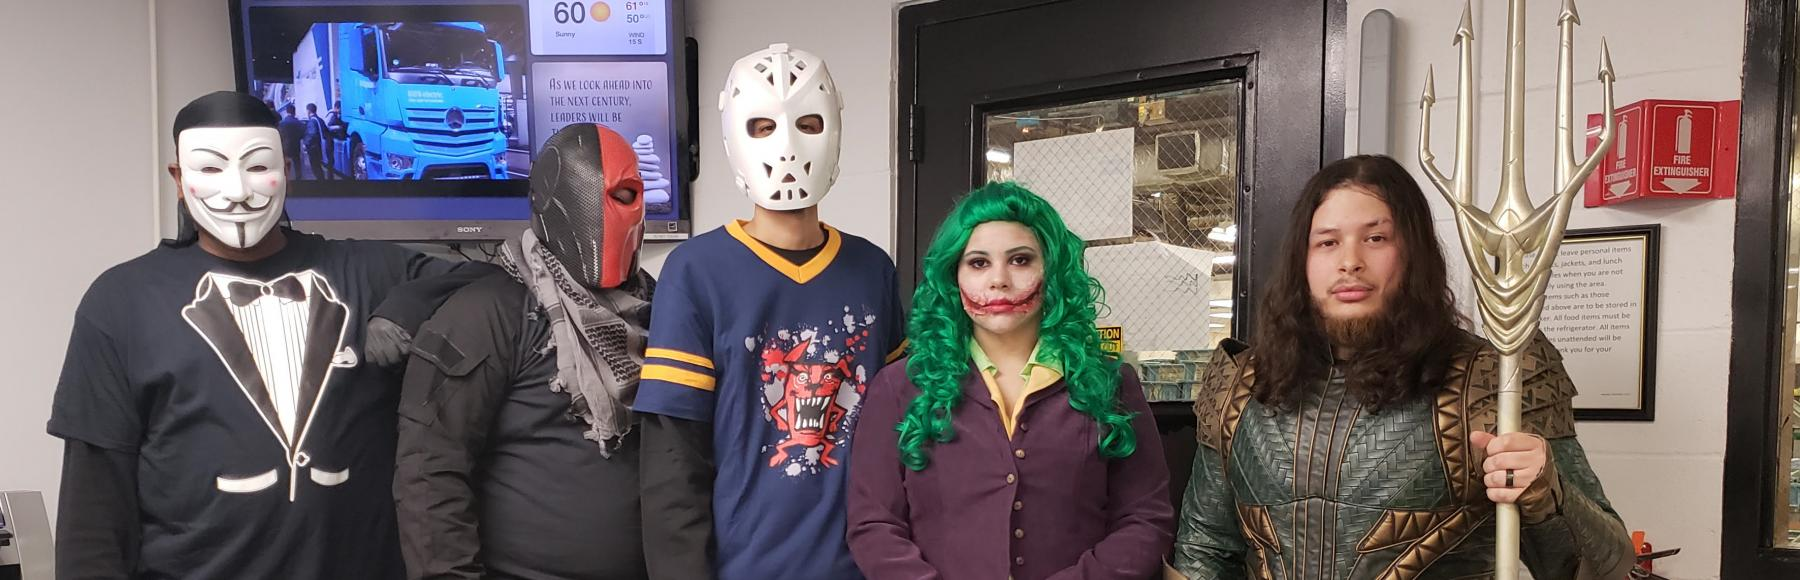 Group of employees dressed up in Halloween costumes.  The group dresses as comic book characters.